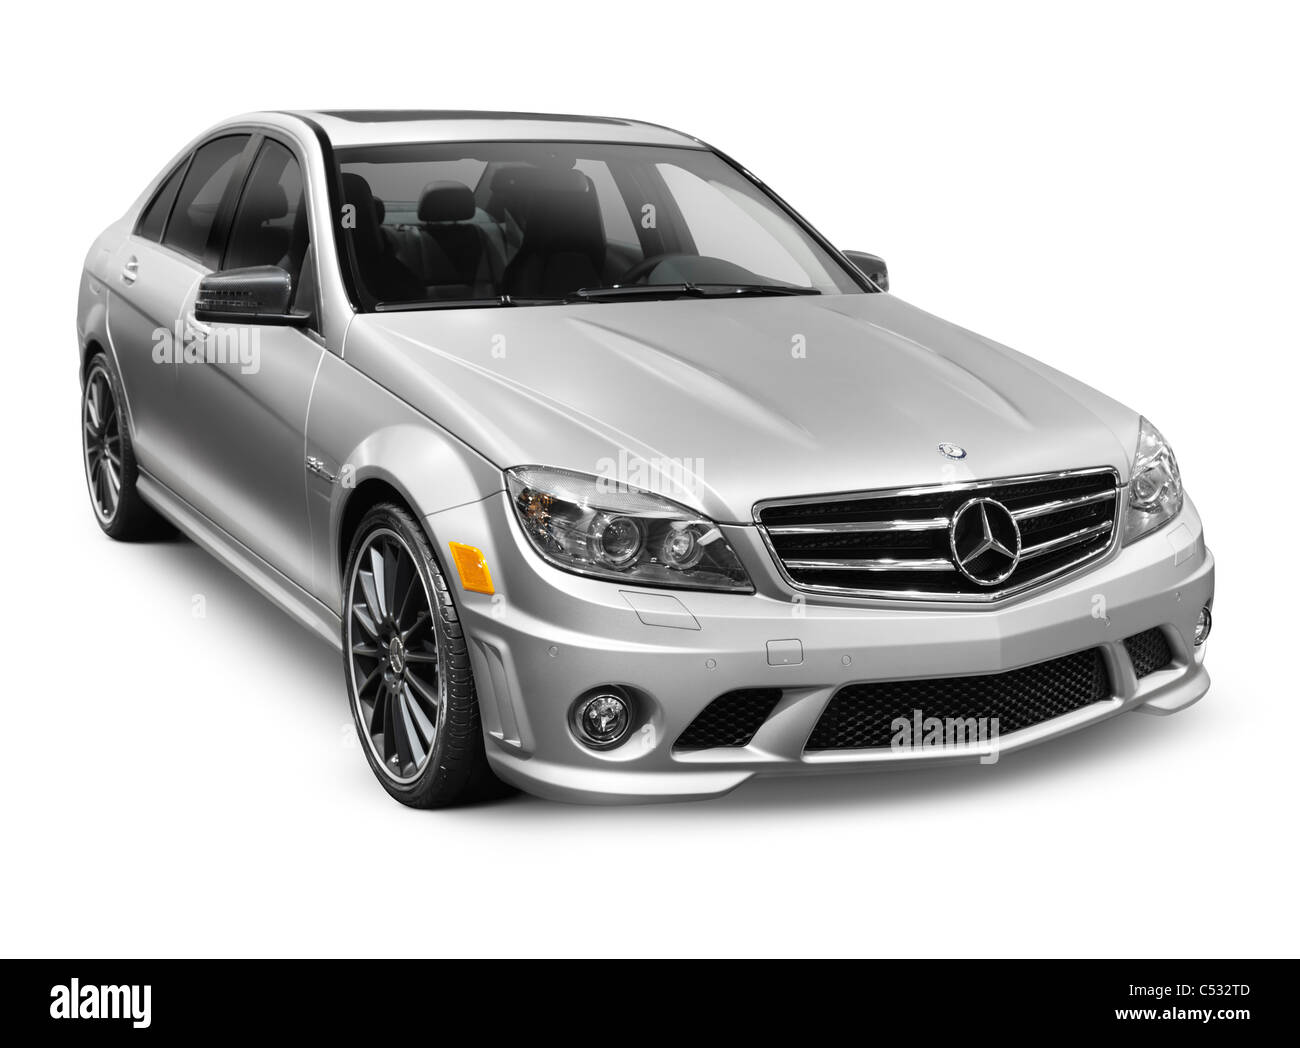 2011 silver mercedes benz c63 amg c class sedan affalterbach edition stock photo royalty free. Black Bedroom Furniture Sets. Home Design Ideas